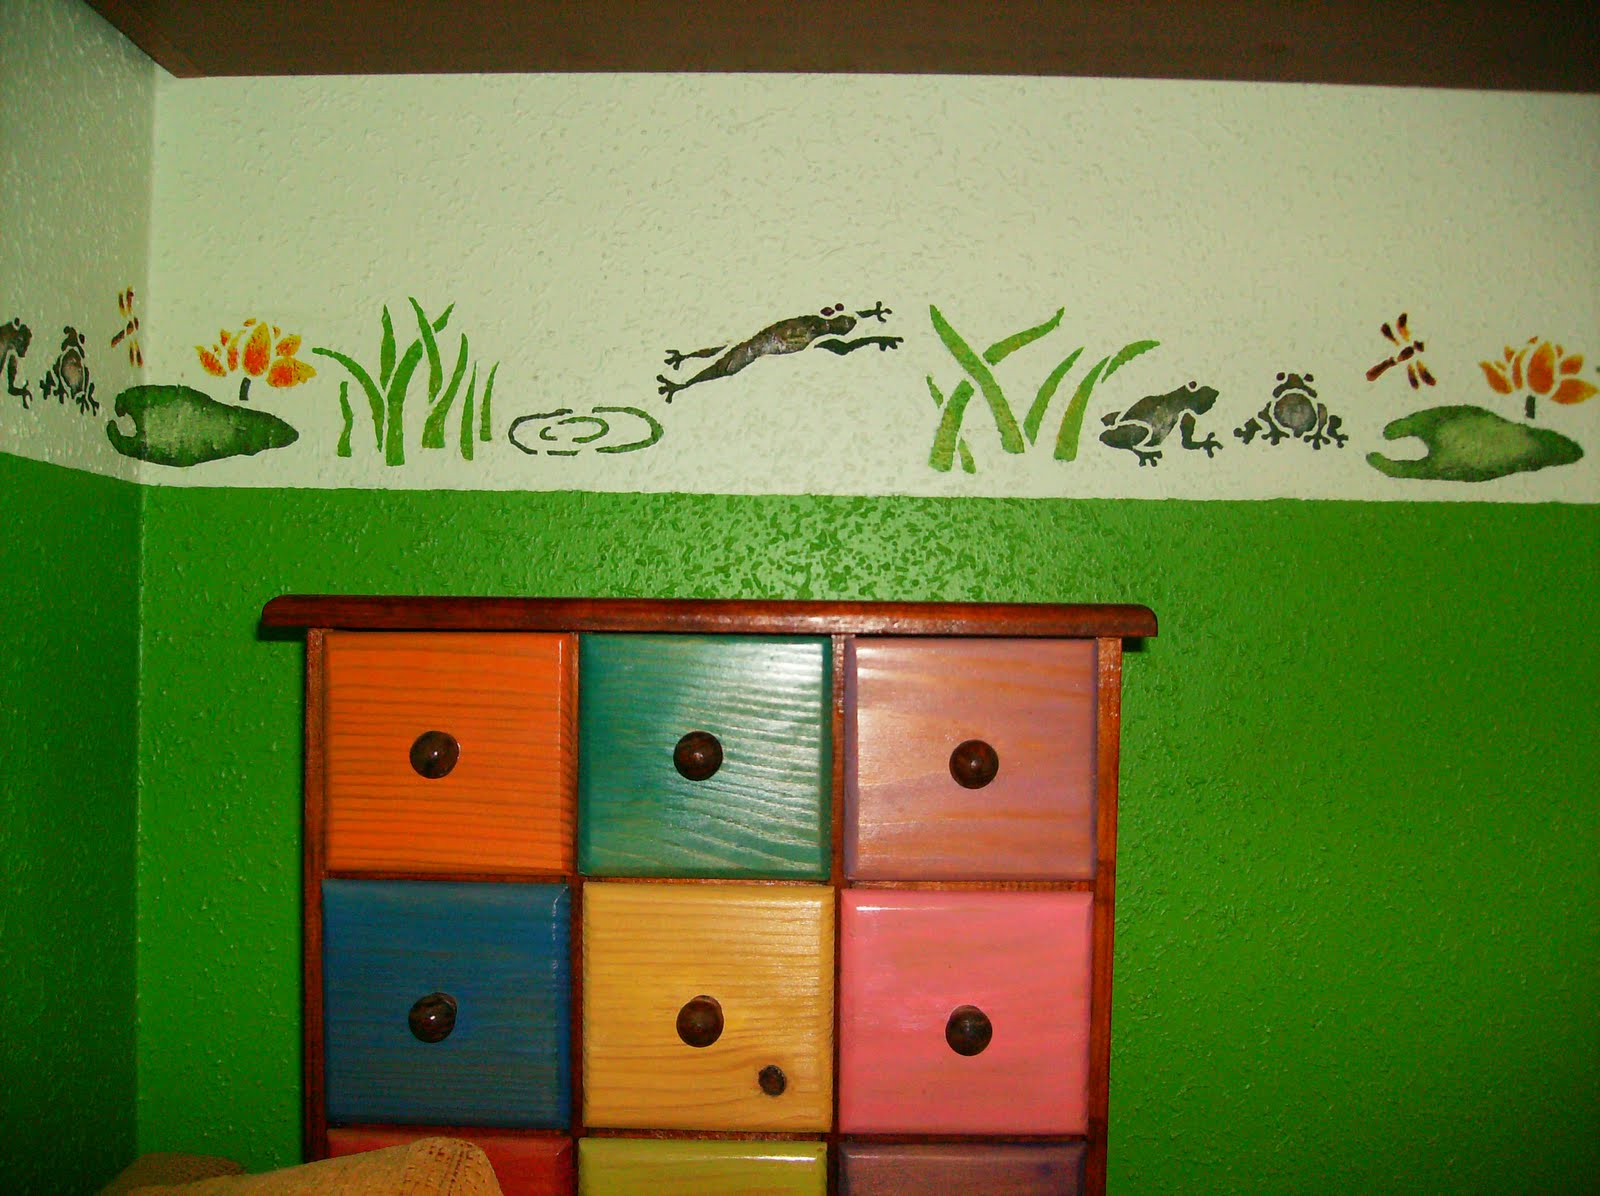 M s que hermanas pintar cenefas en la pared - Plantillas para pared ...